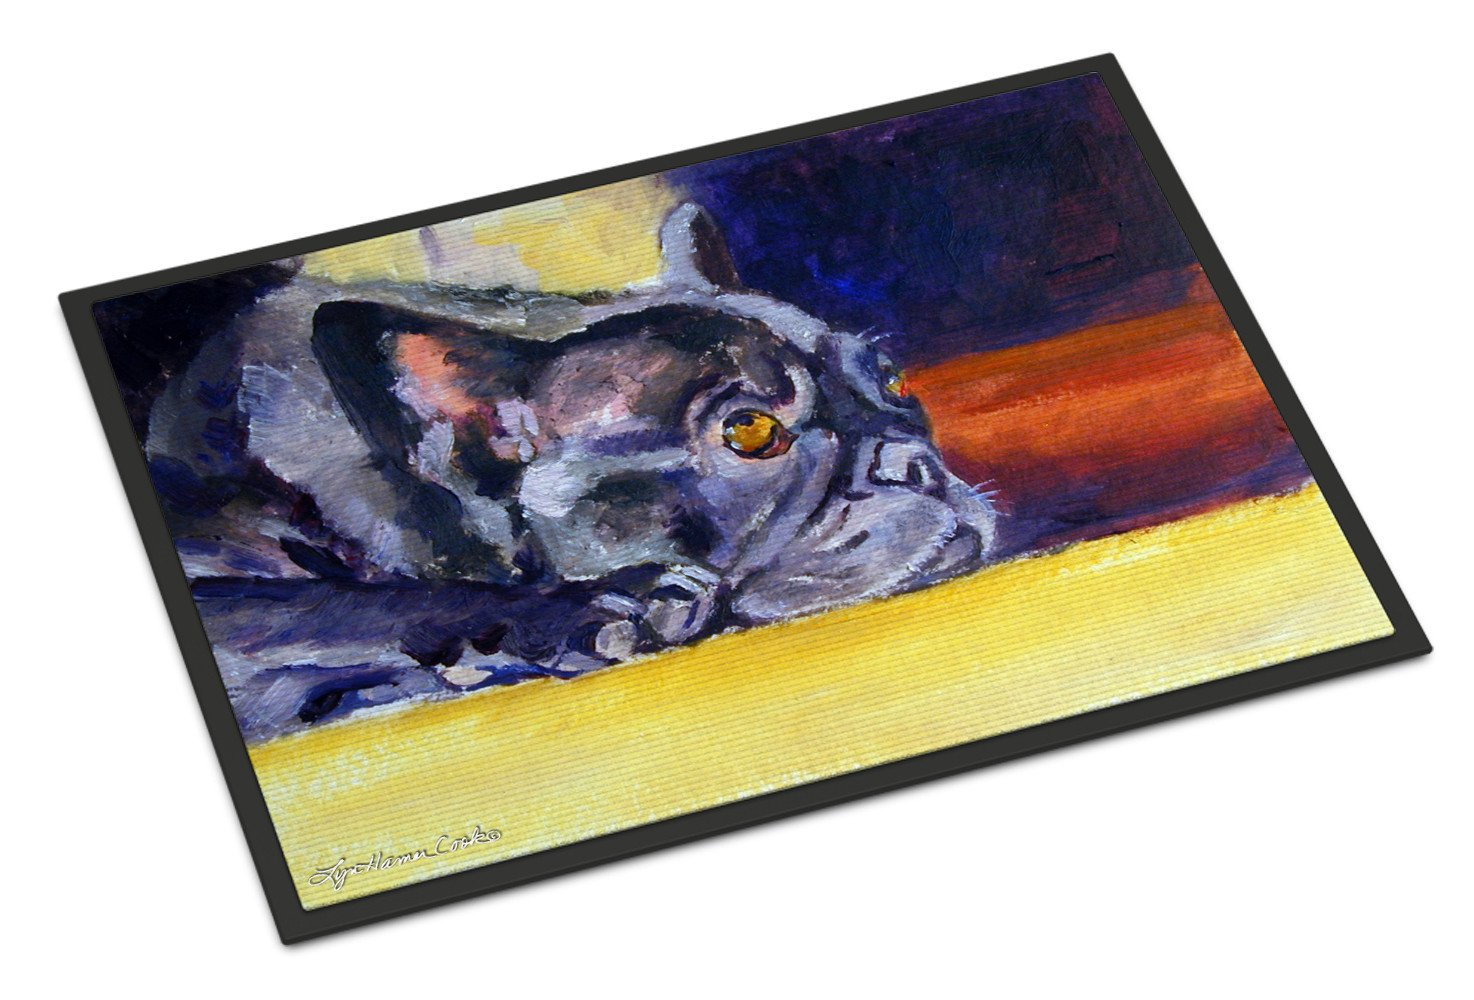 Black French Bulldog Sunny Indoor or Outdoor Mat 18x27 7331MAT - the-store.com